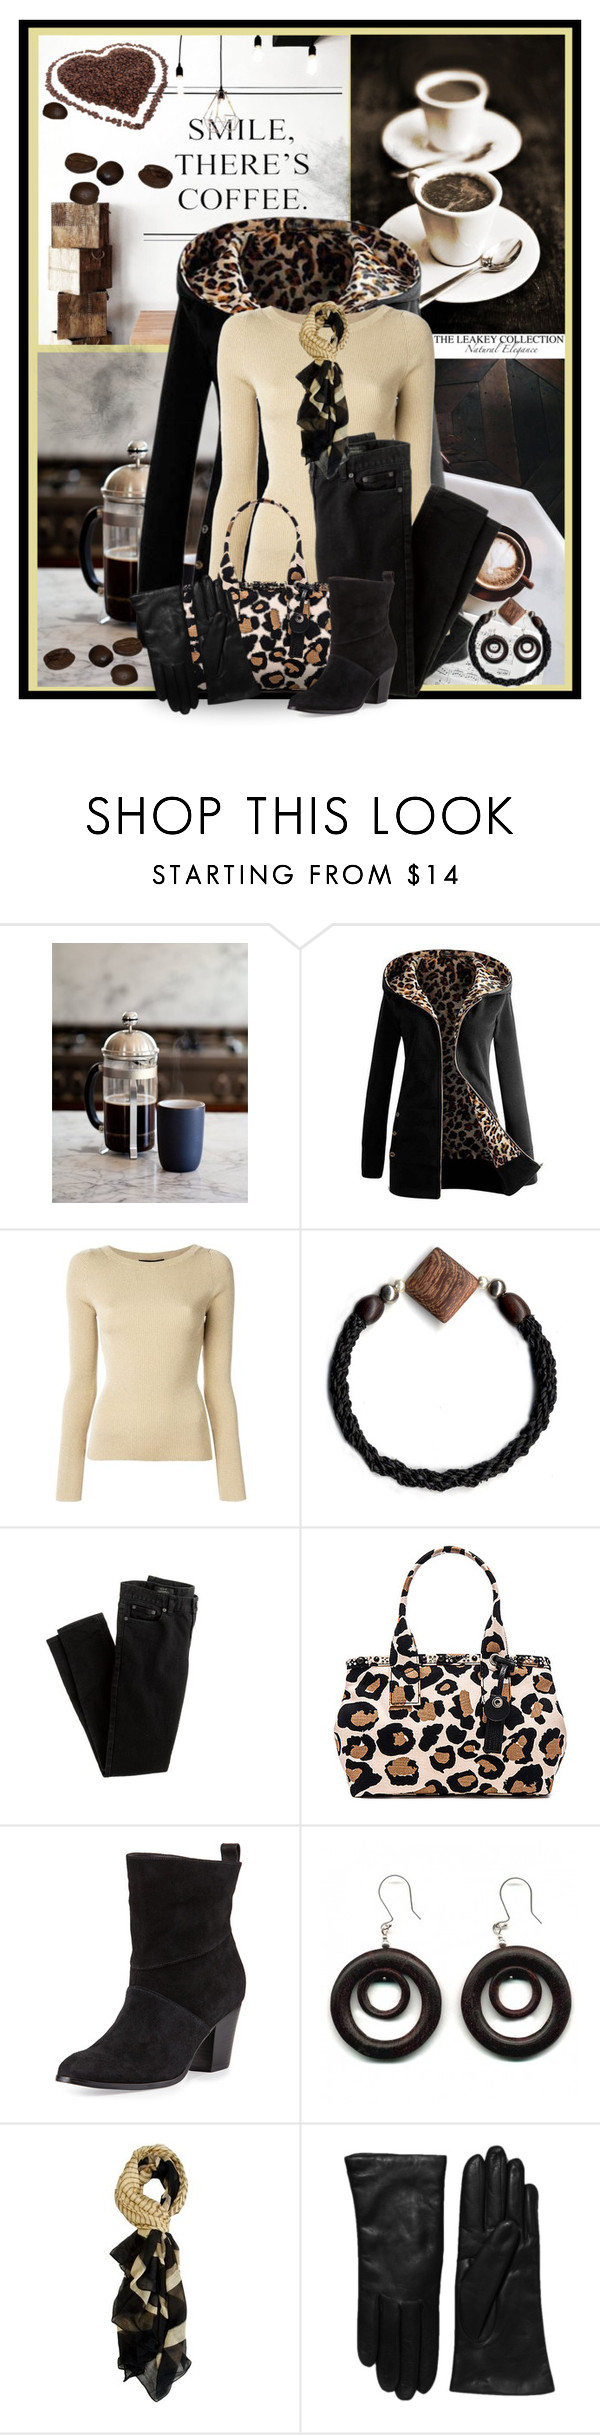 """""""Smile, There's Coffee"""" by theleakeycollection ❤ liked on Polyvore featuring Tiger Mist, Dolce&Gabbana, J.Crew, Marc by Marc Jacobs, Bernardo, Saks Fifth Avenue Collection, women's clothing, women, female and woman"""